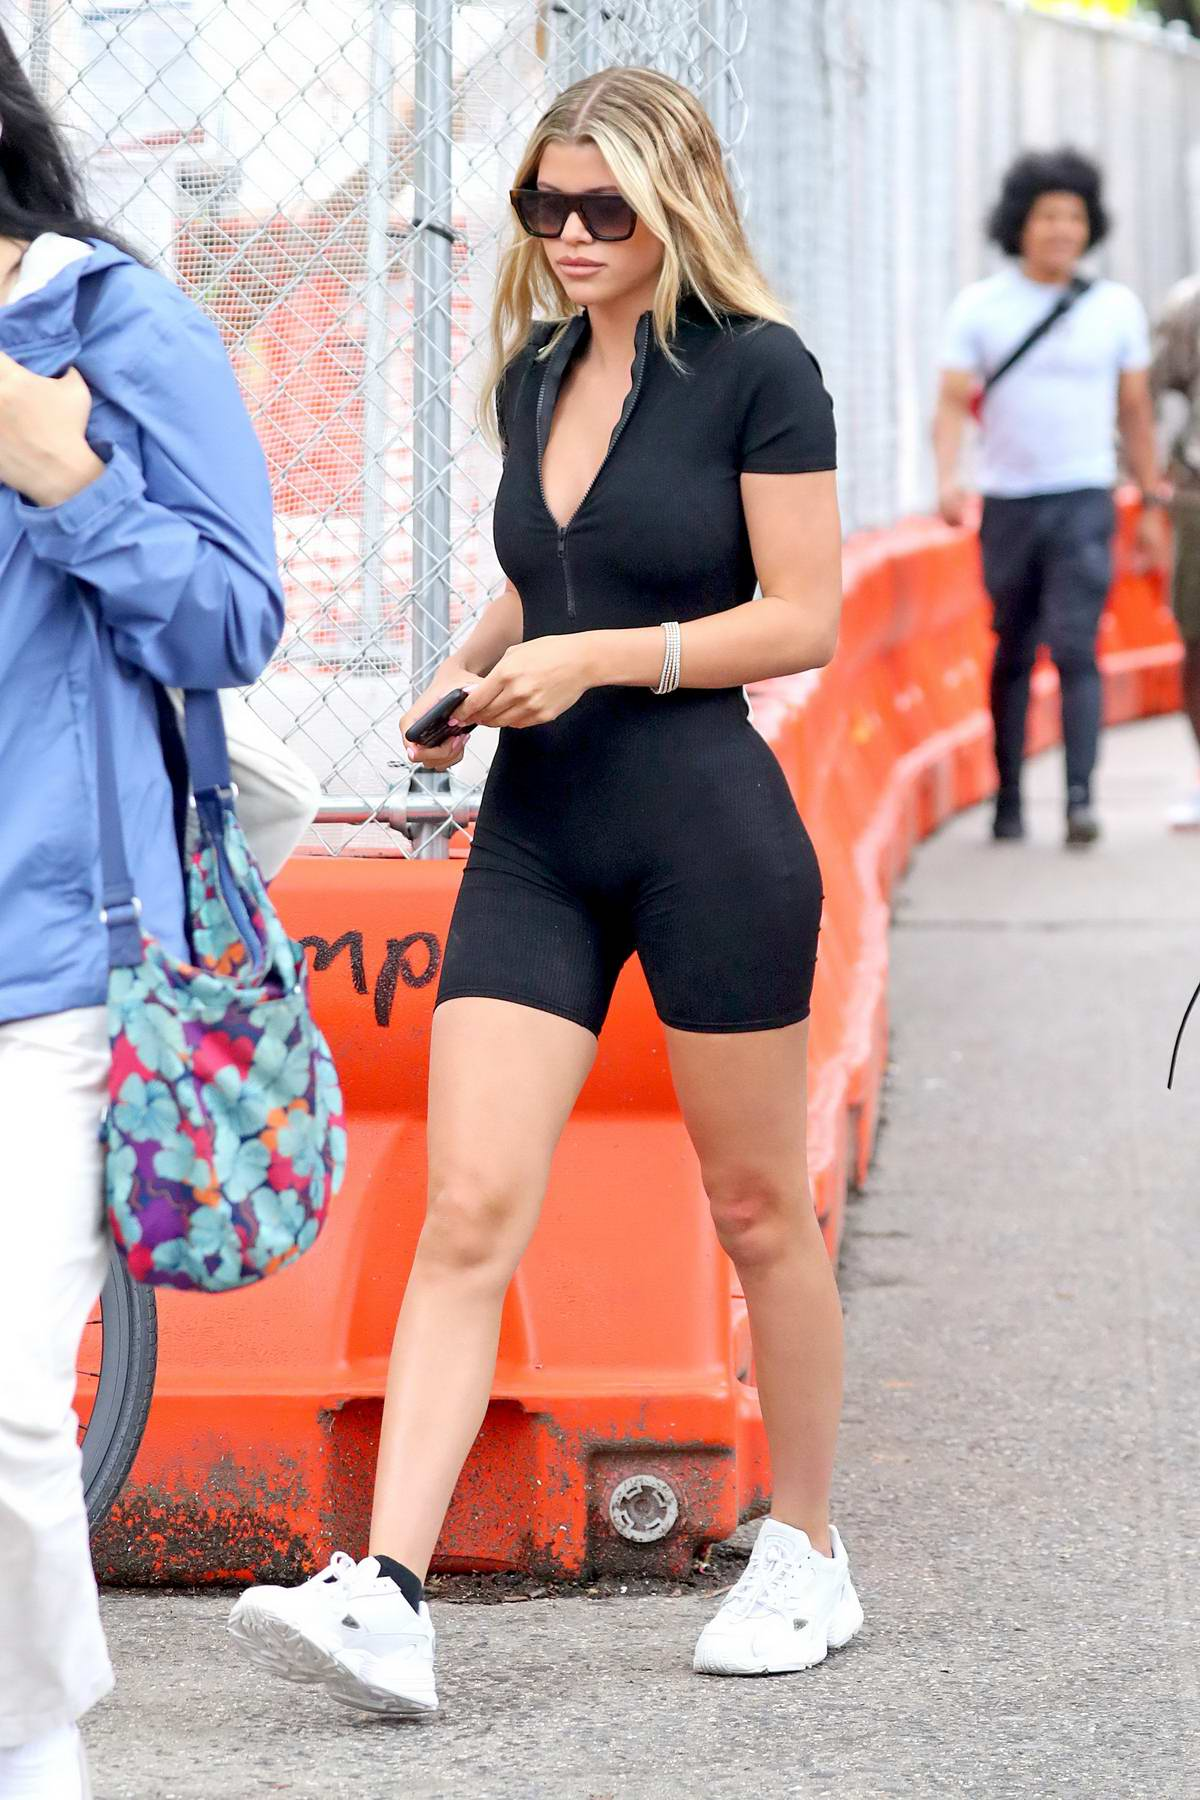 Sofia Richie rocks a black skin-tight romper while out in New York City